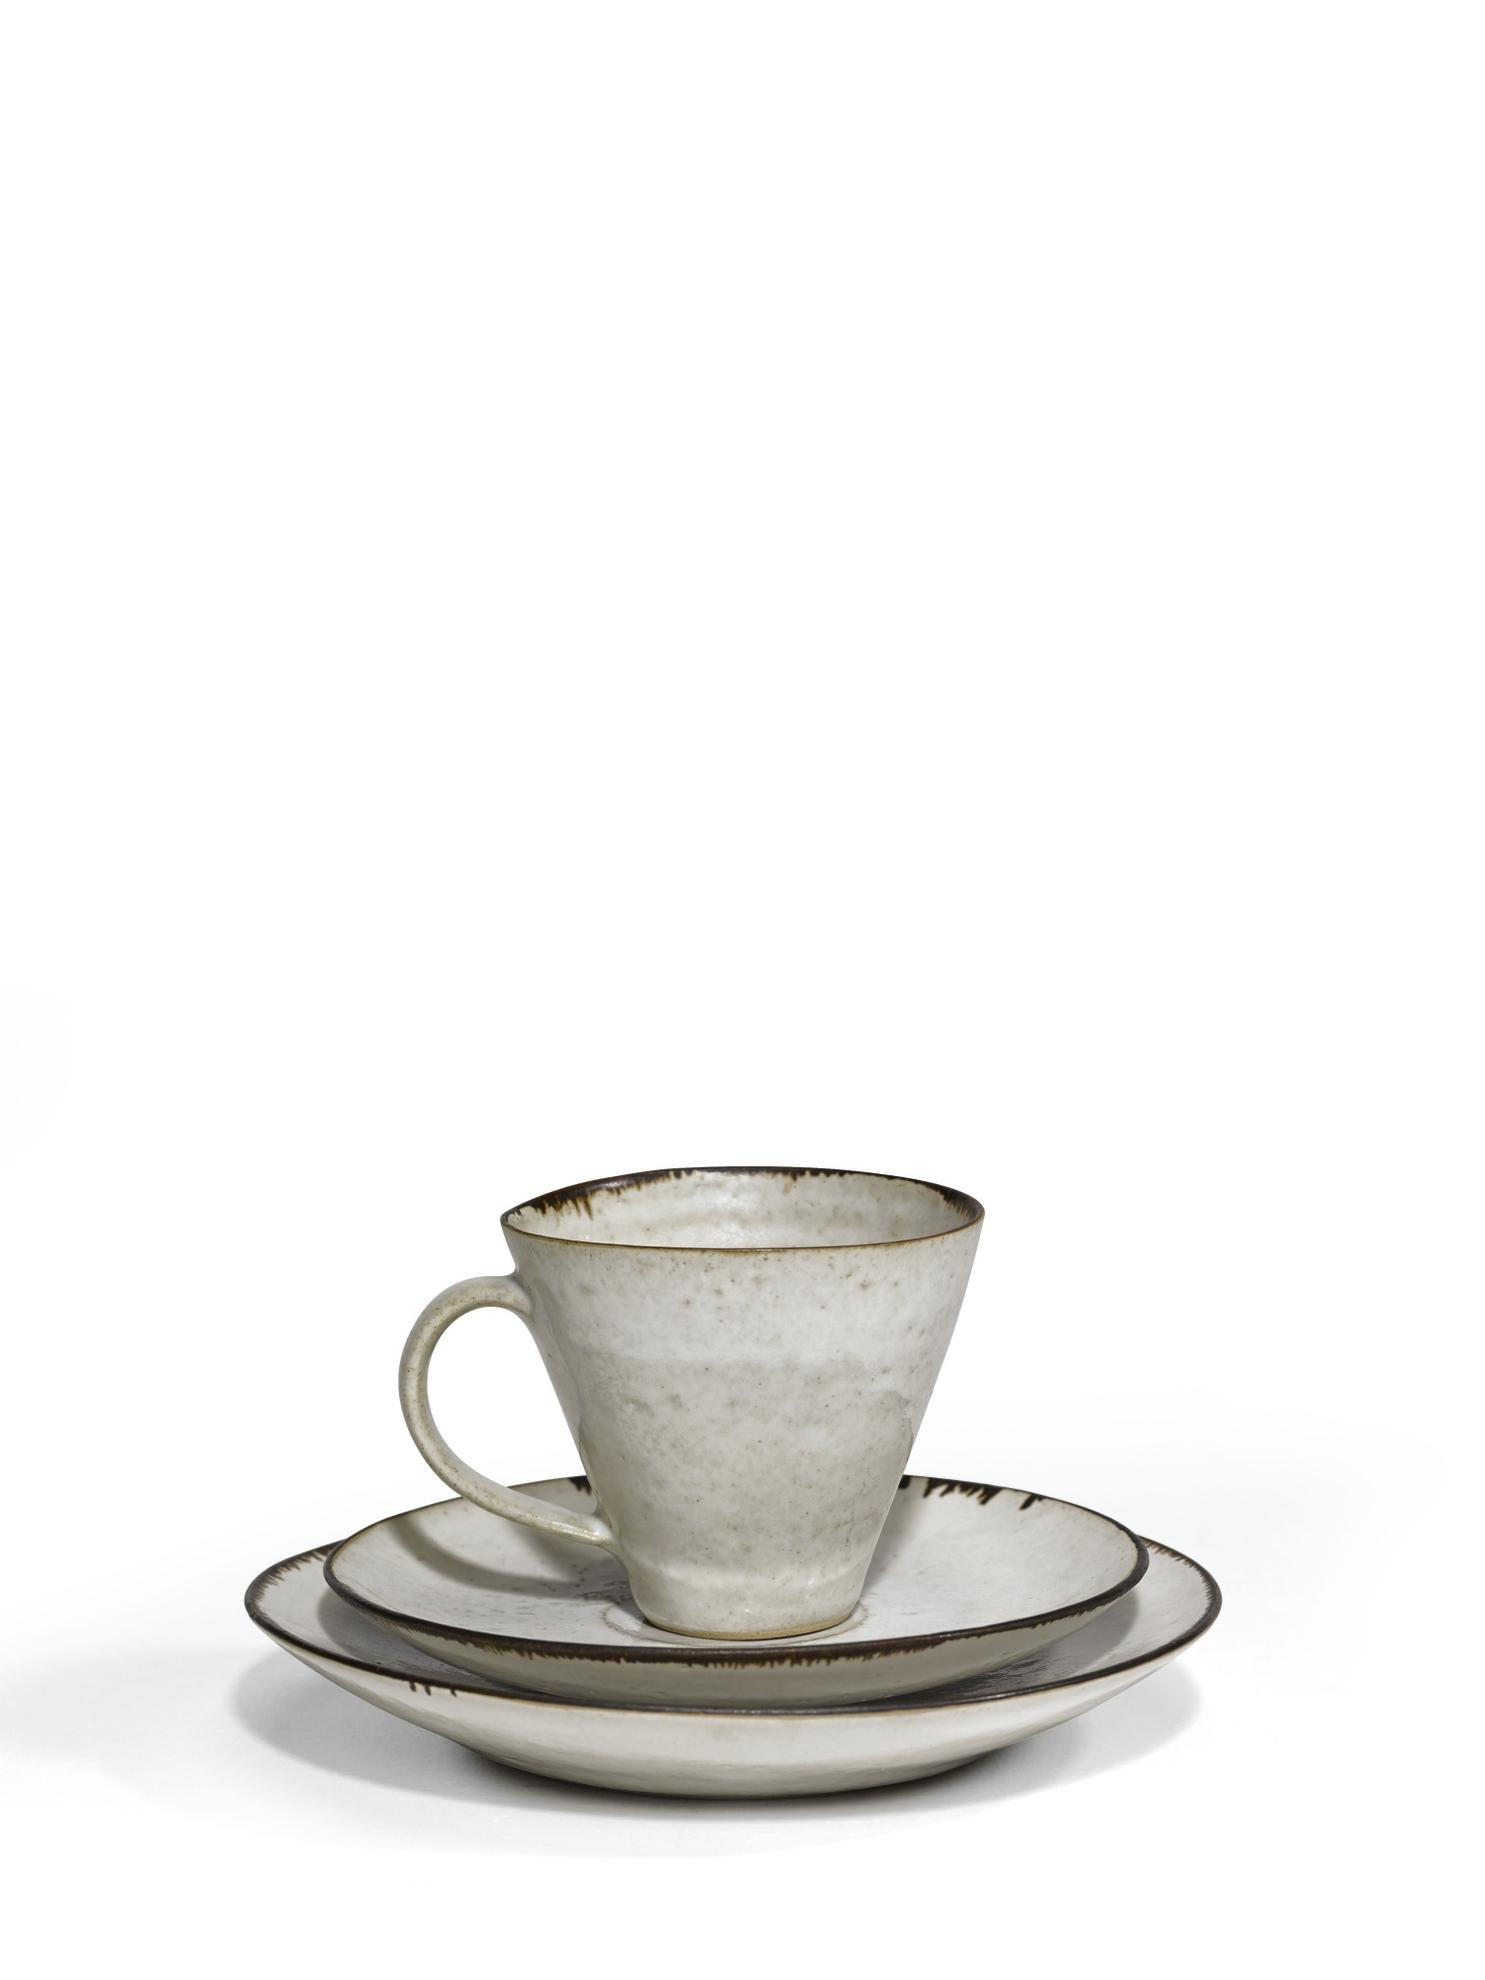 Dame Lucie Rie & Hans Coper - Set Of 9 Teacups, Saucers And Side Plates-1950